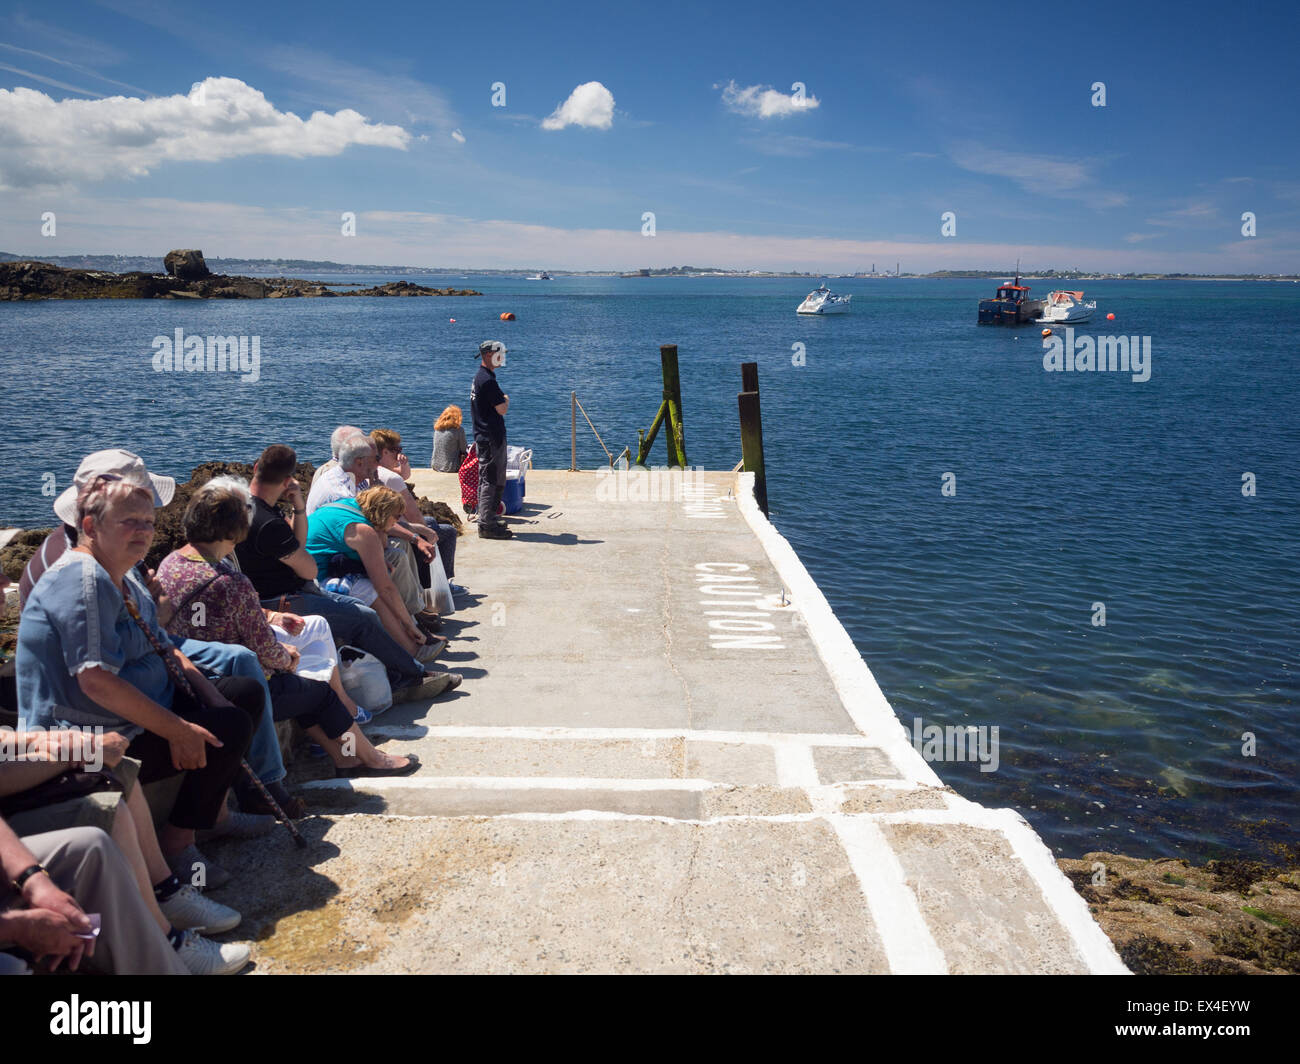 Holidaymakers on the Island of Herm, queuing for the ferry to Guernsey - Stock Image